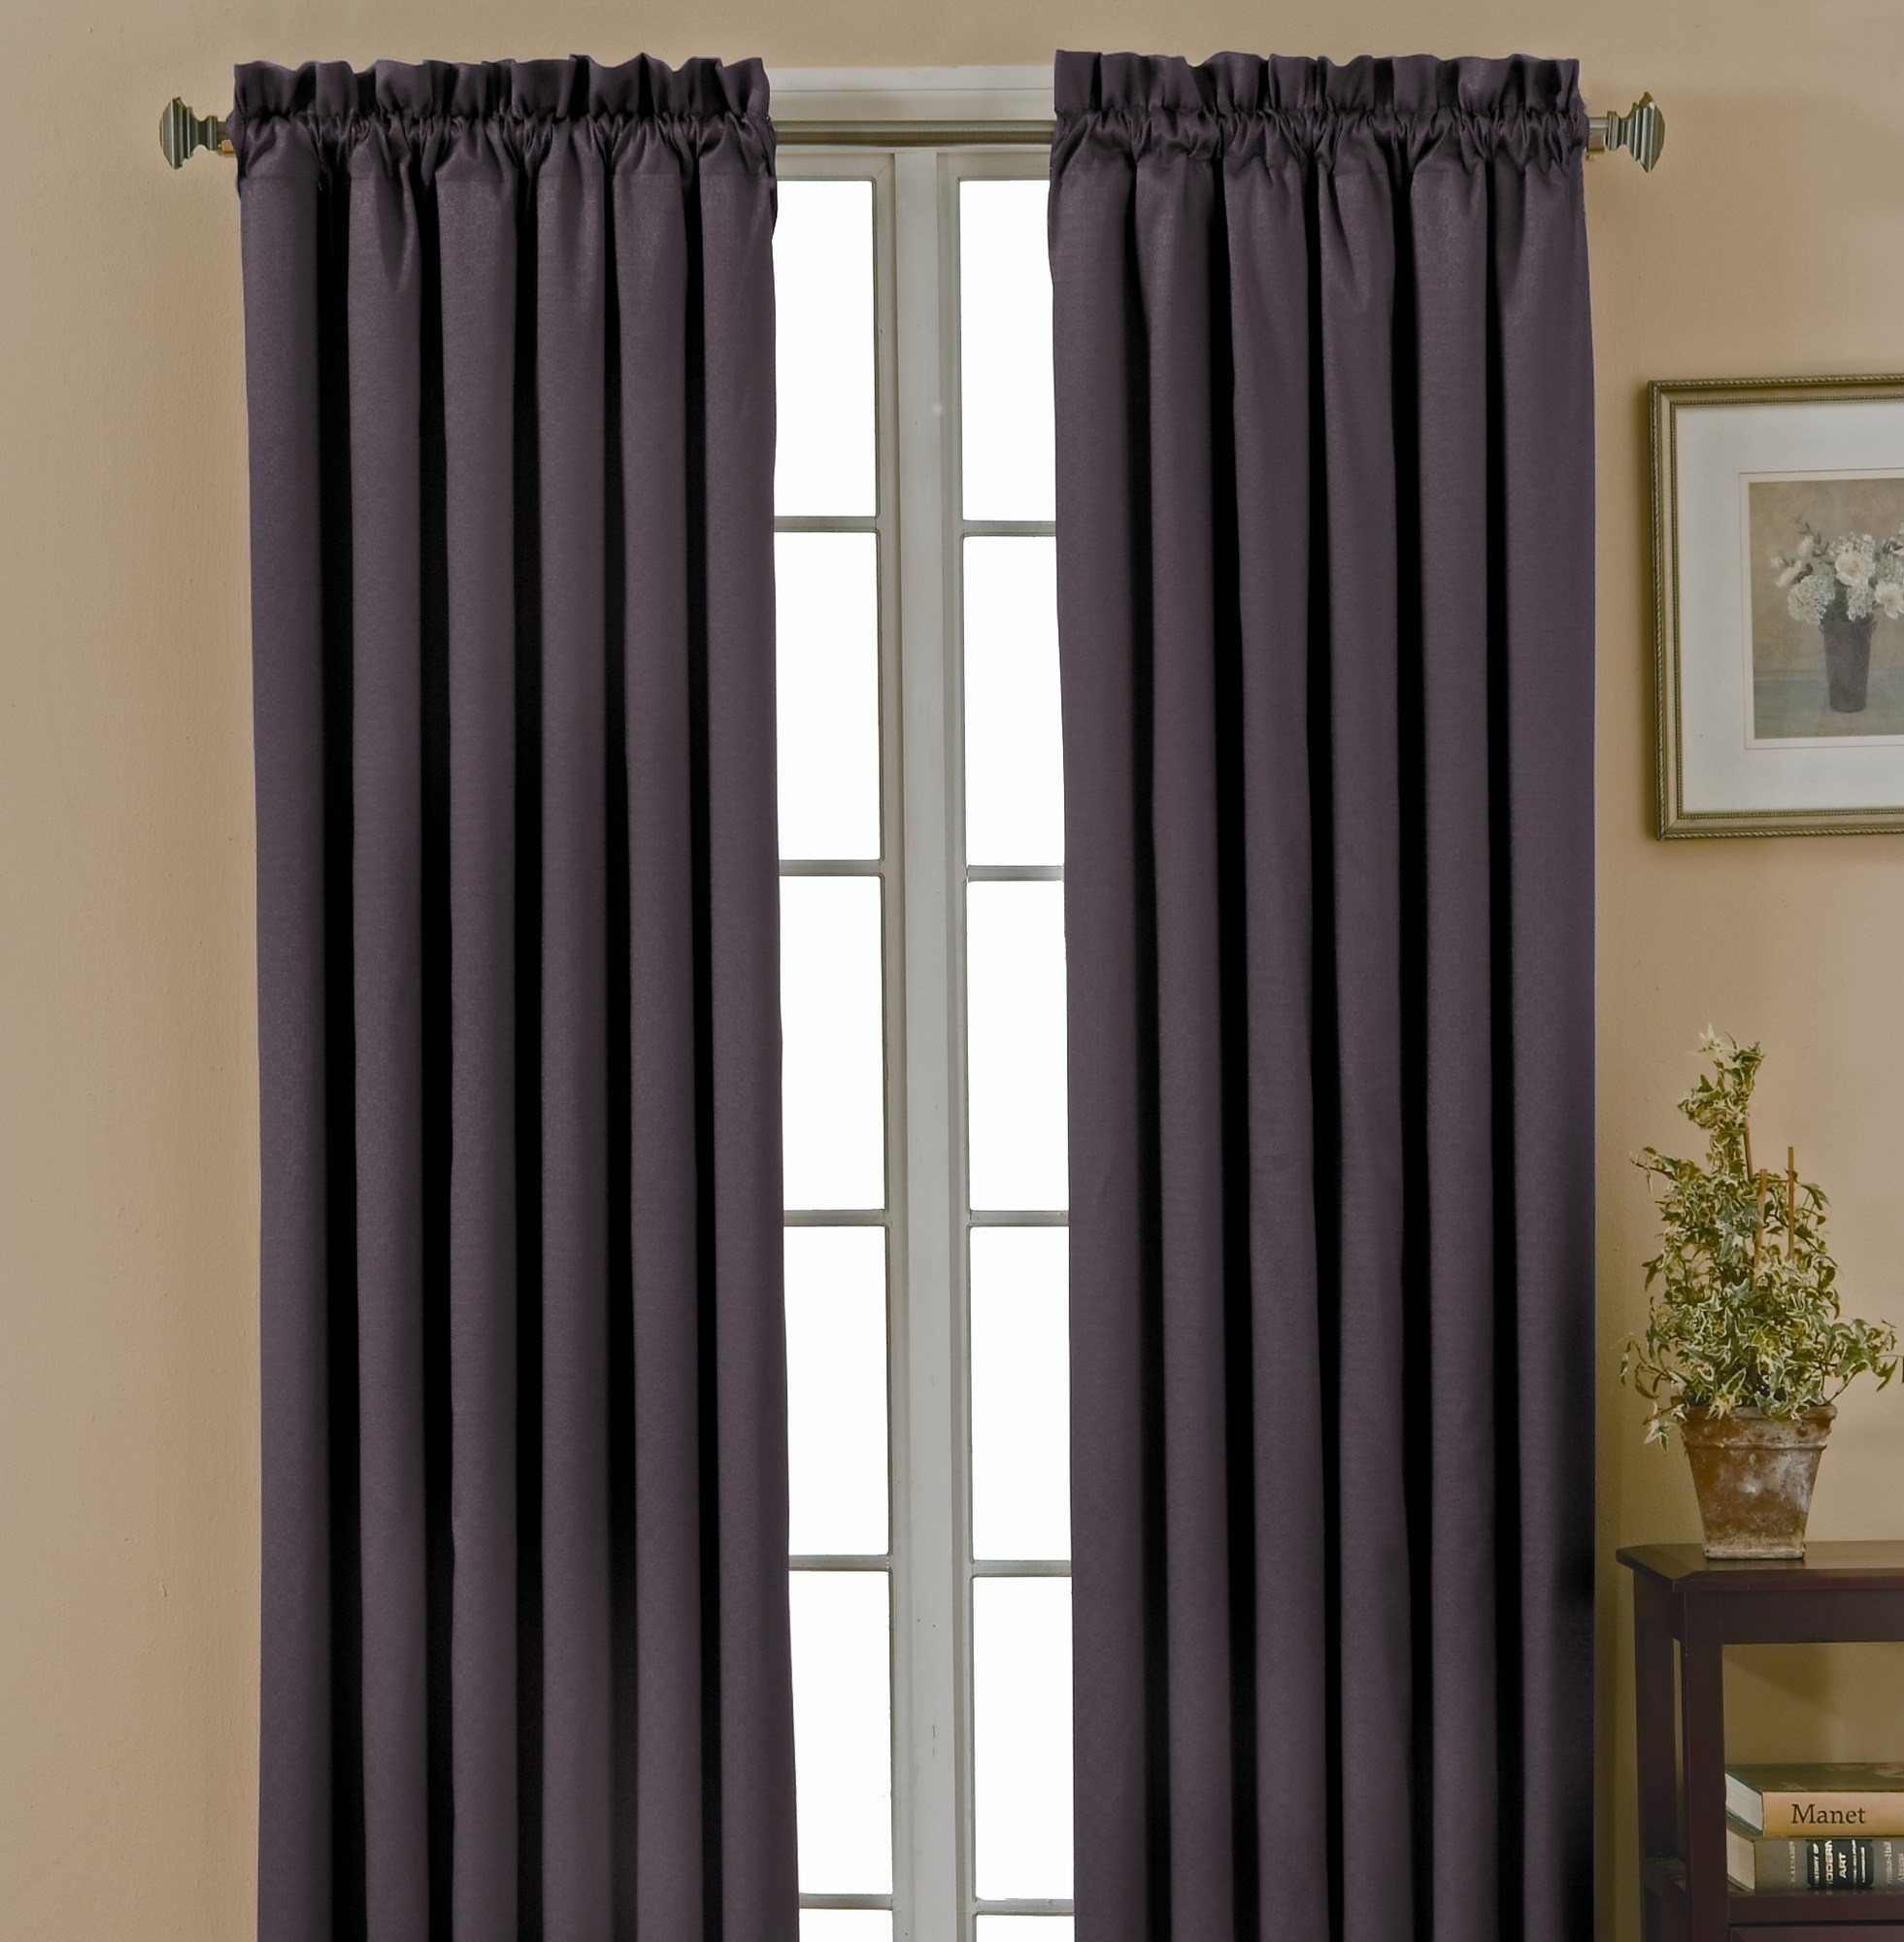 Featured Image of Hotel Quality Blackout Curtains